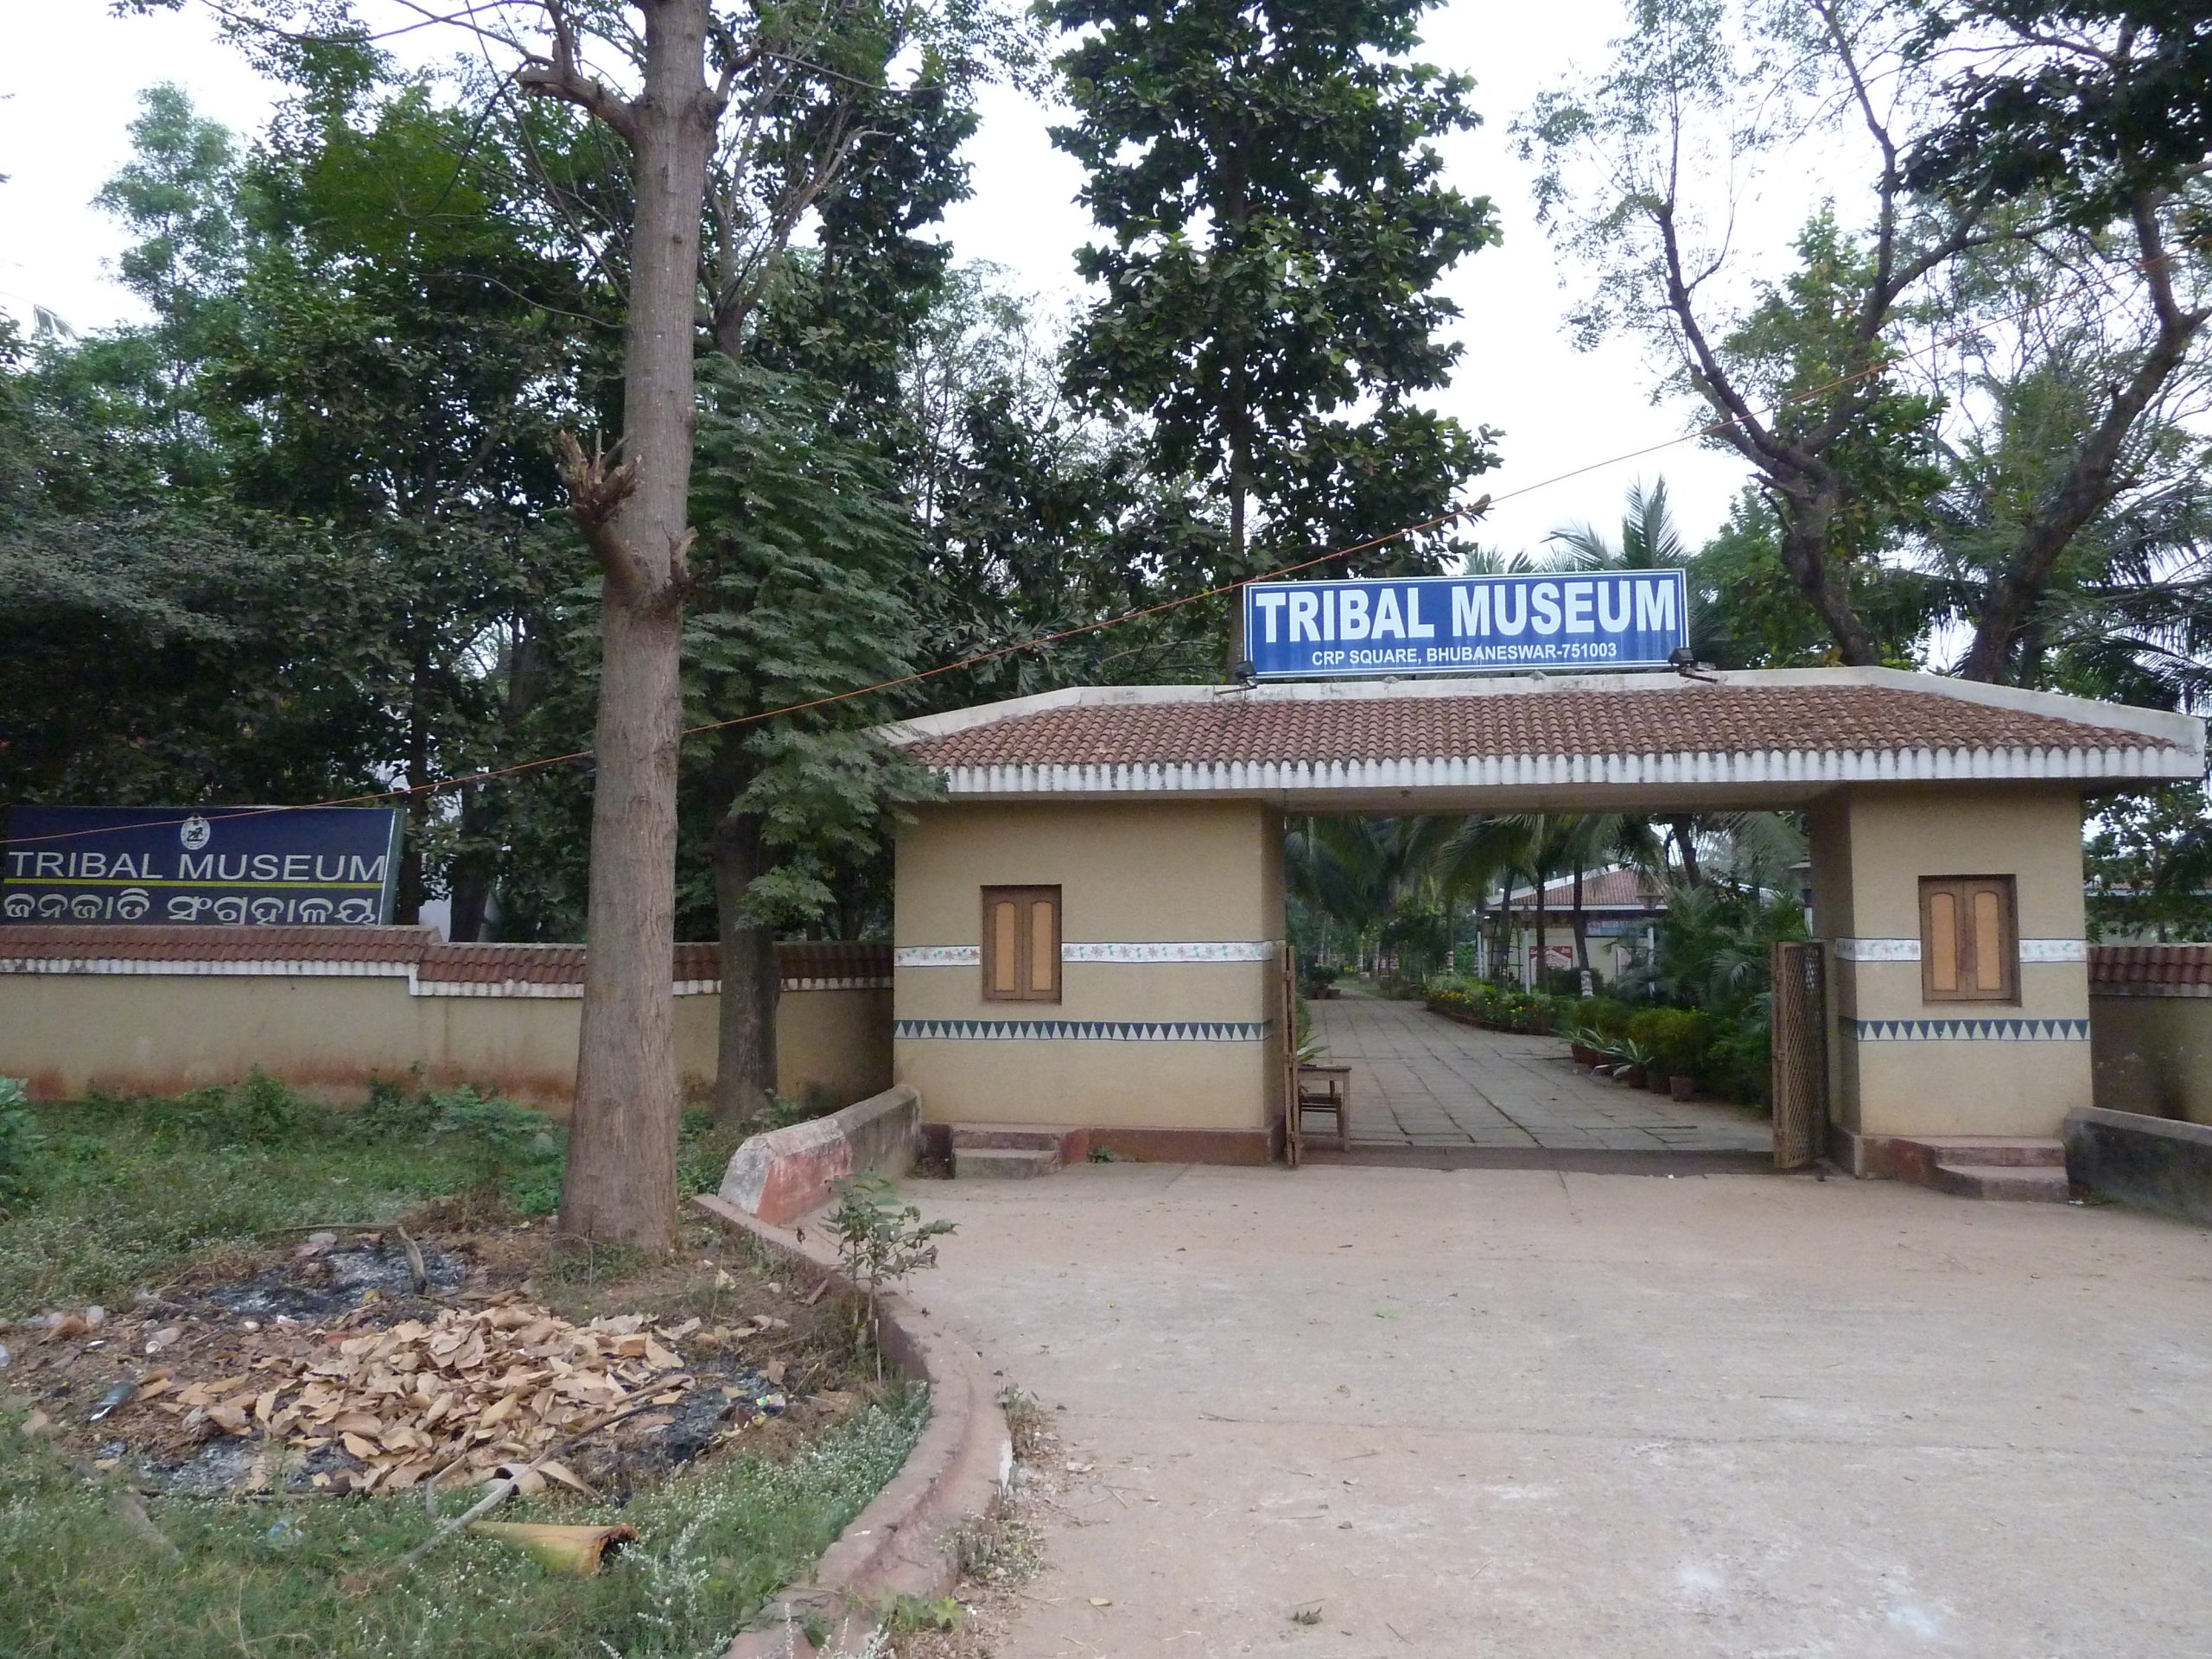 Most Popular Place To Visit In Bhubaneswar - Museum Of Tribal Arts And Artifacts